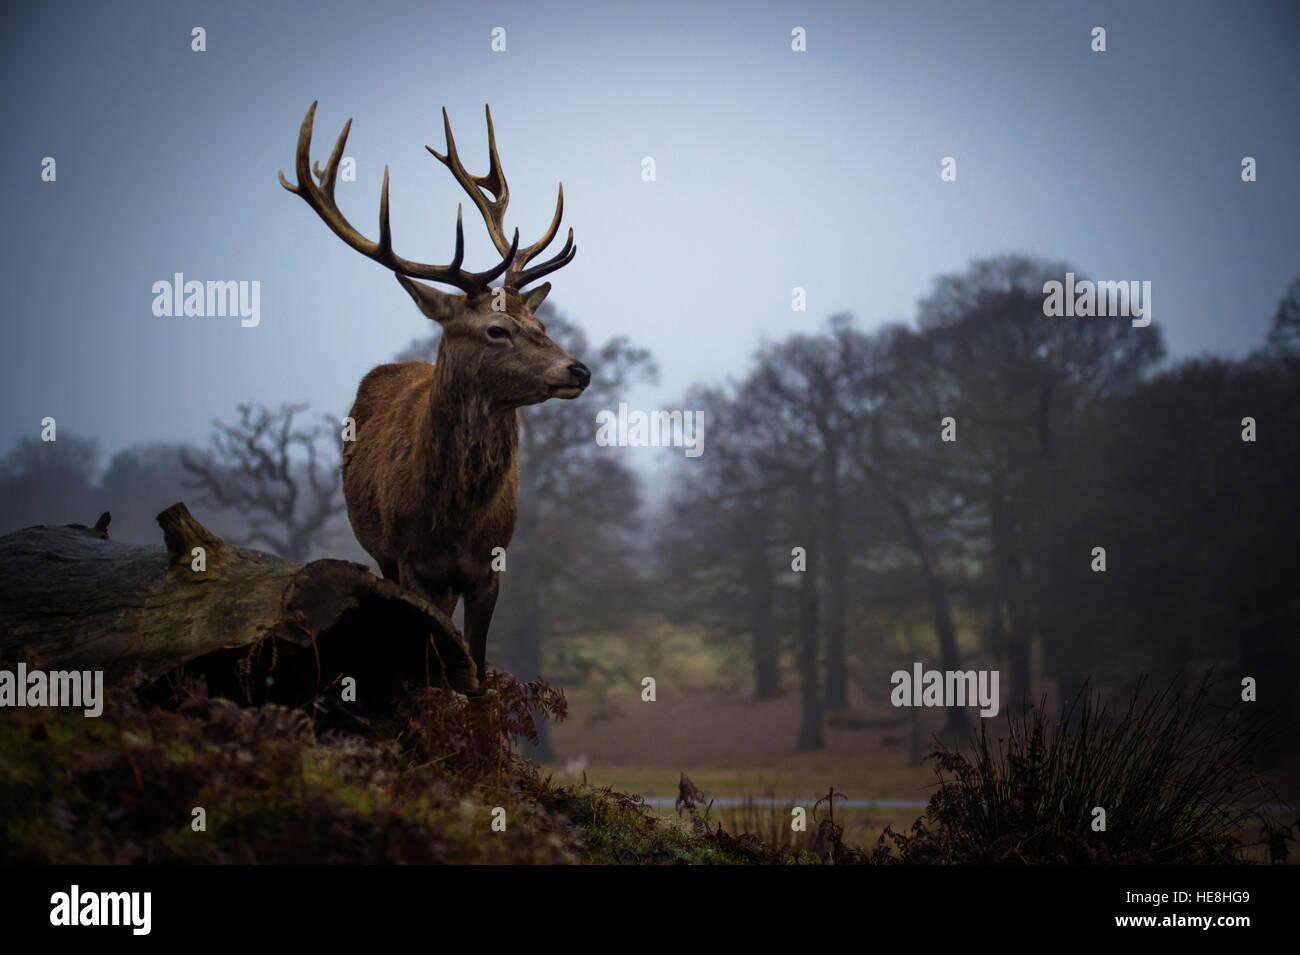 Red deer In richmond park, London, England. Stock Photo